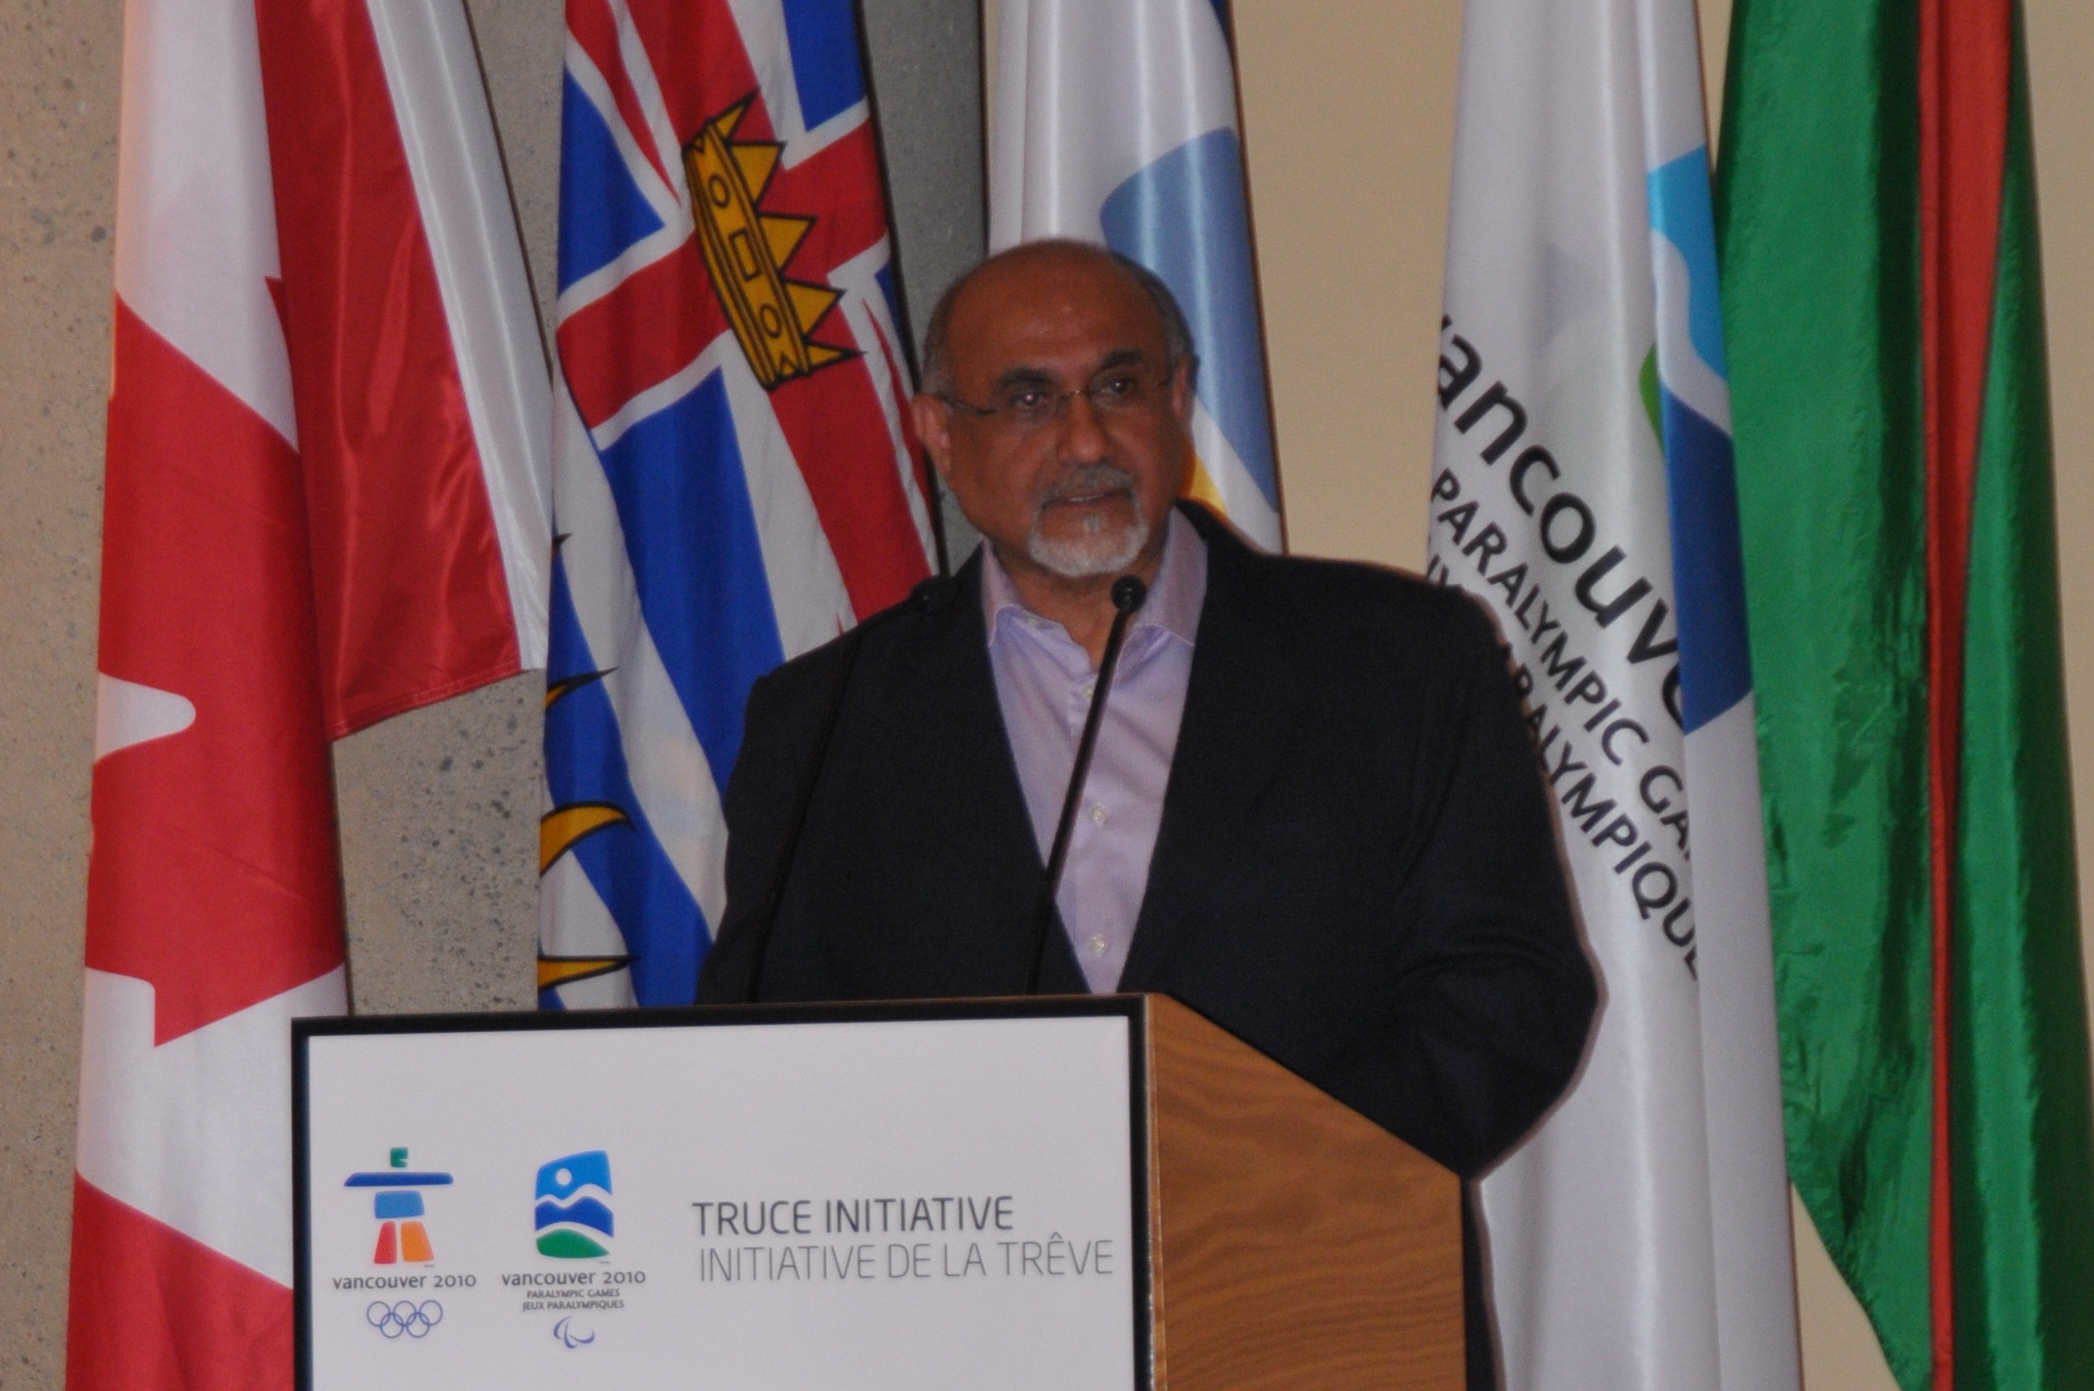 Ismaili Council for Canada President Mohamed Manji welcomes the Governor General of Canada, VANOC and all Truce Dialogue participants to the Ismaili Centre, Burnaby. Photo: Aziz Ladha